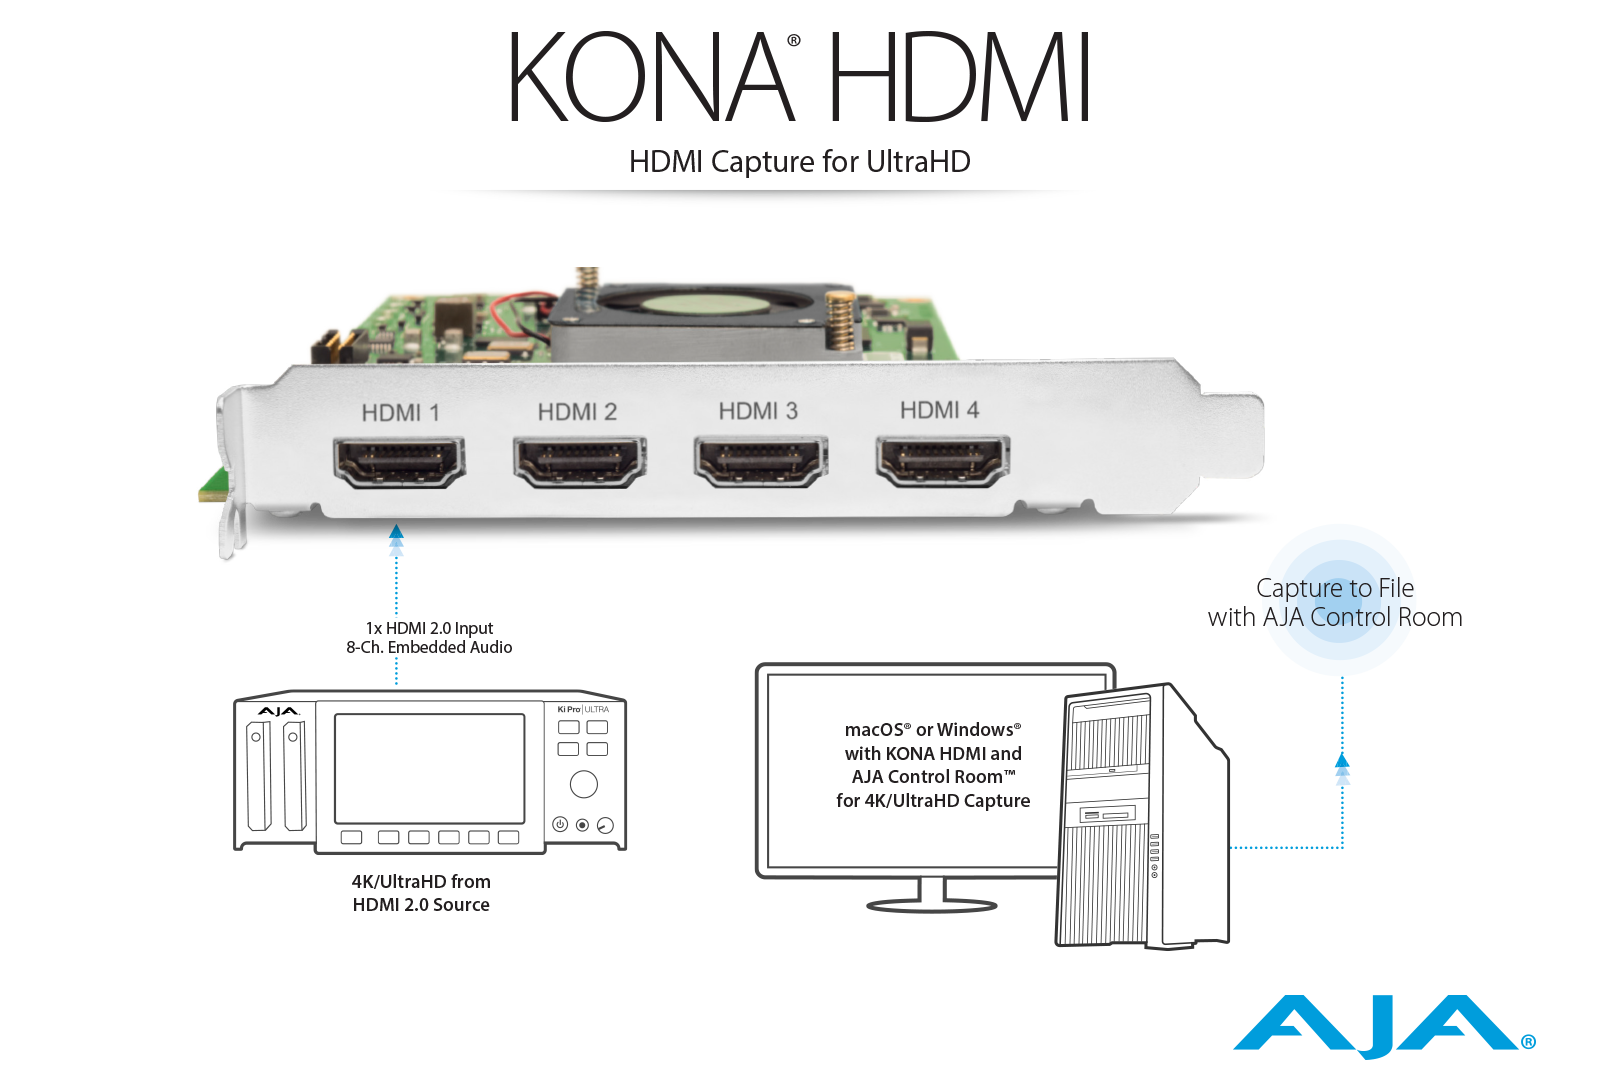 AJA Kona HDMI Capture for Multi-Channel HD or Single Channel UltraHD